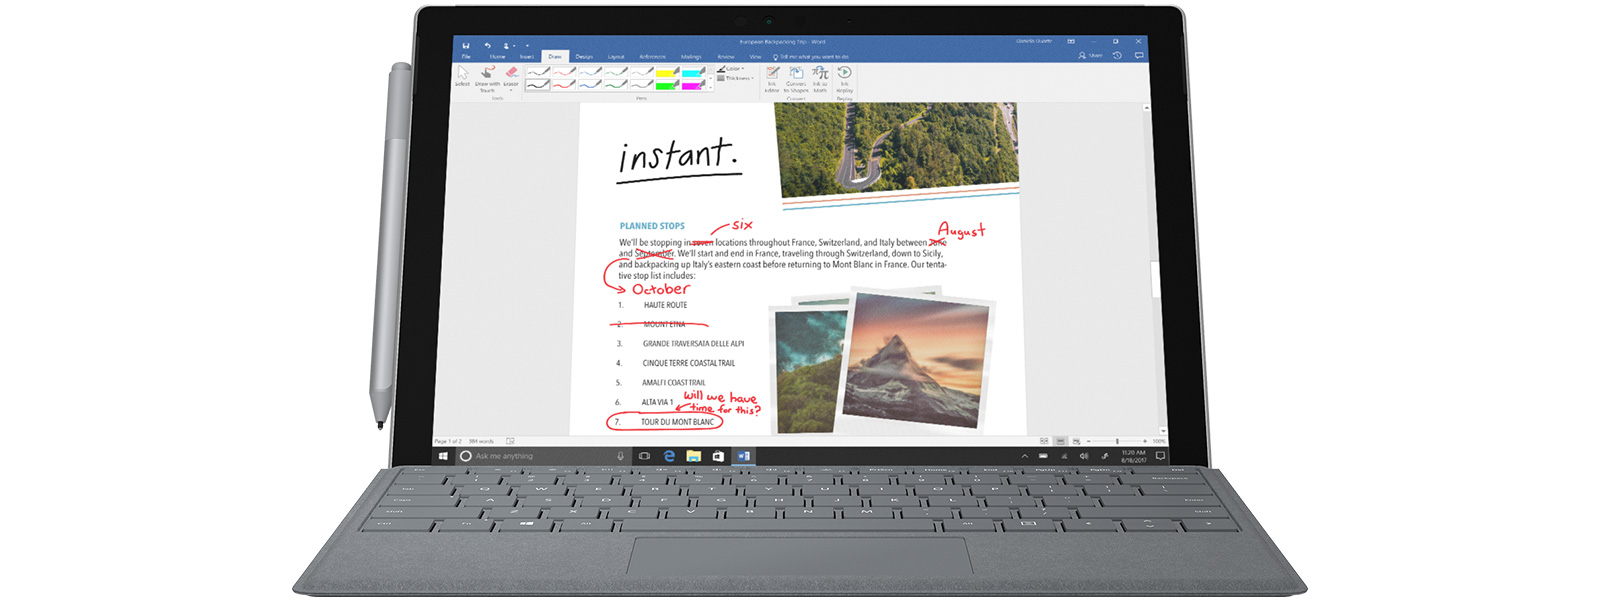 Windows ink office windows ink workspace sticky notes surface pro with windows ink in microsoft word pooptronica Choice Image